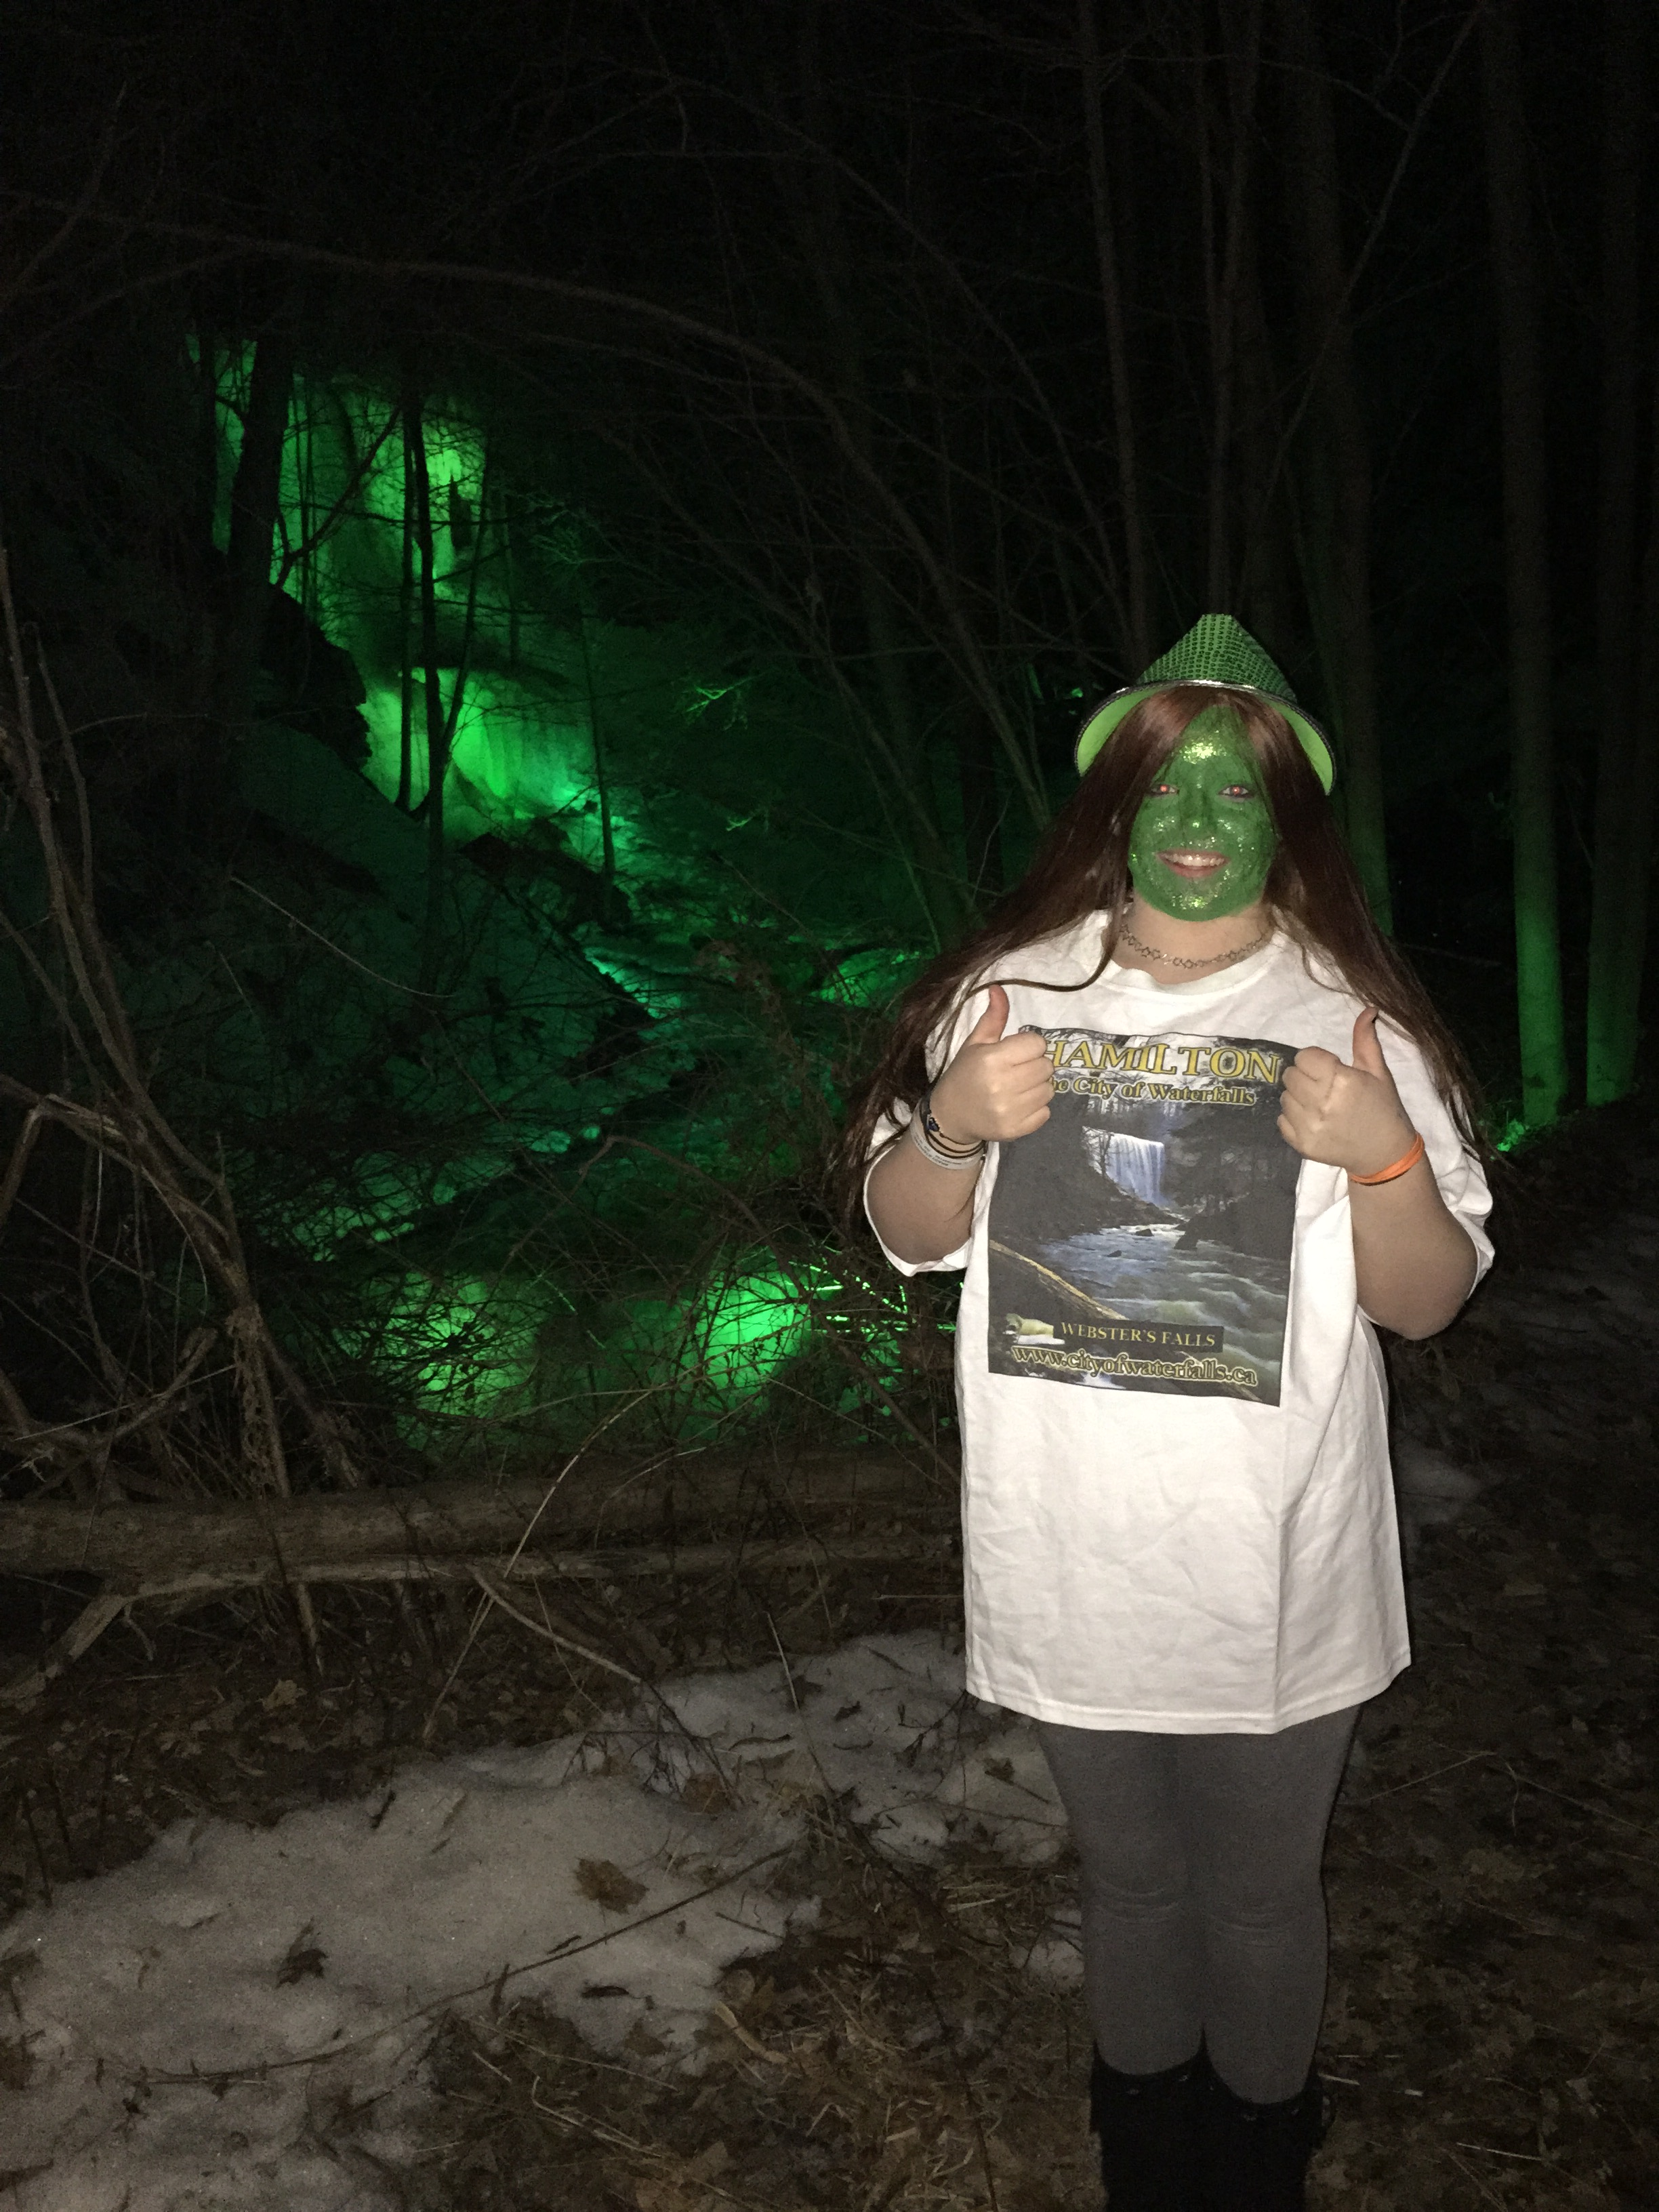 Tonights winner of our City of Waterfalls t-shirt!!!